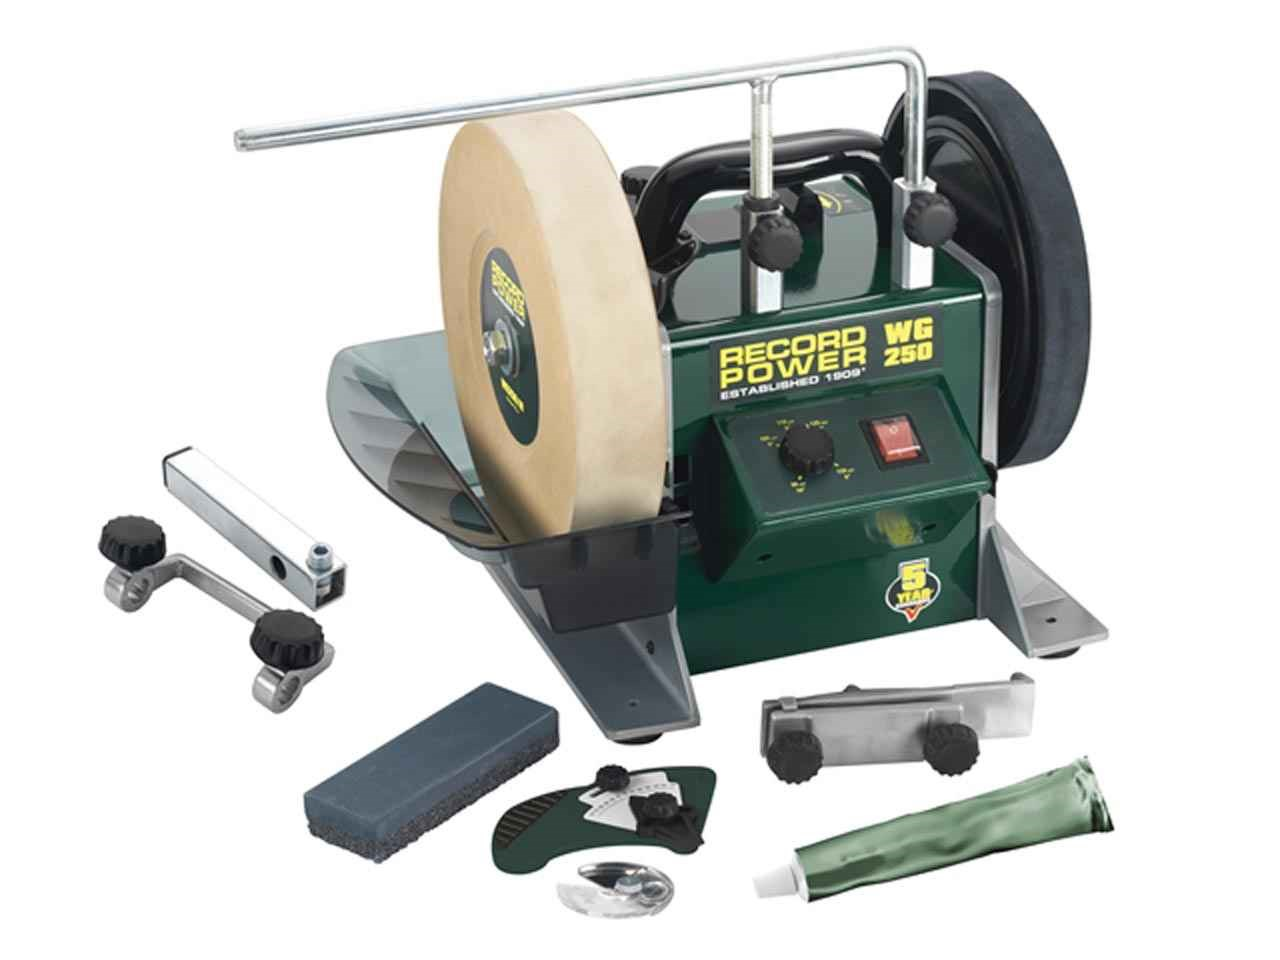 Record Power Wg250 Wet Stone Grinder